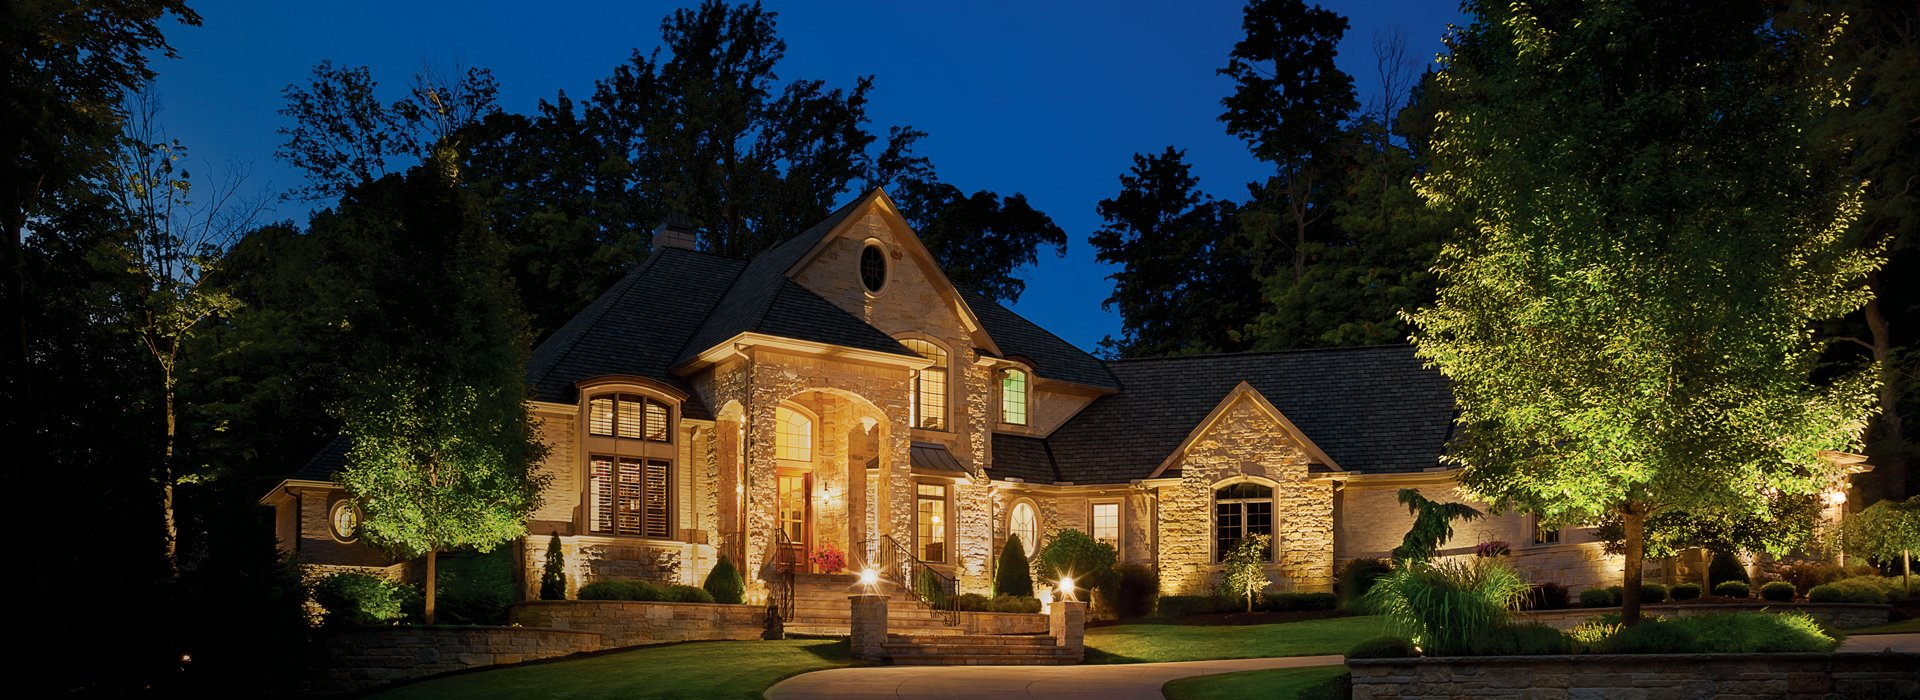 Landscape Lighting Guide And Tips Kichler